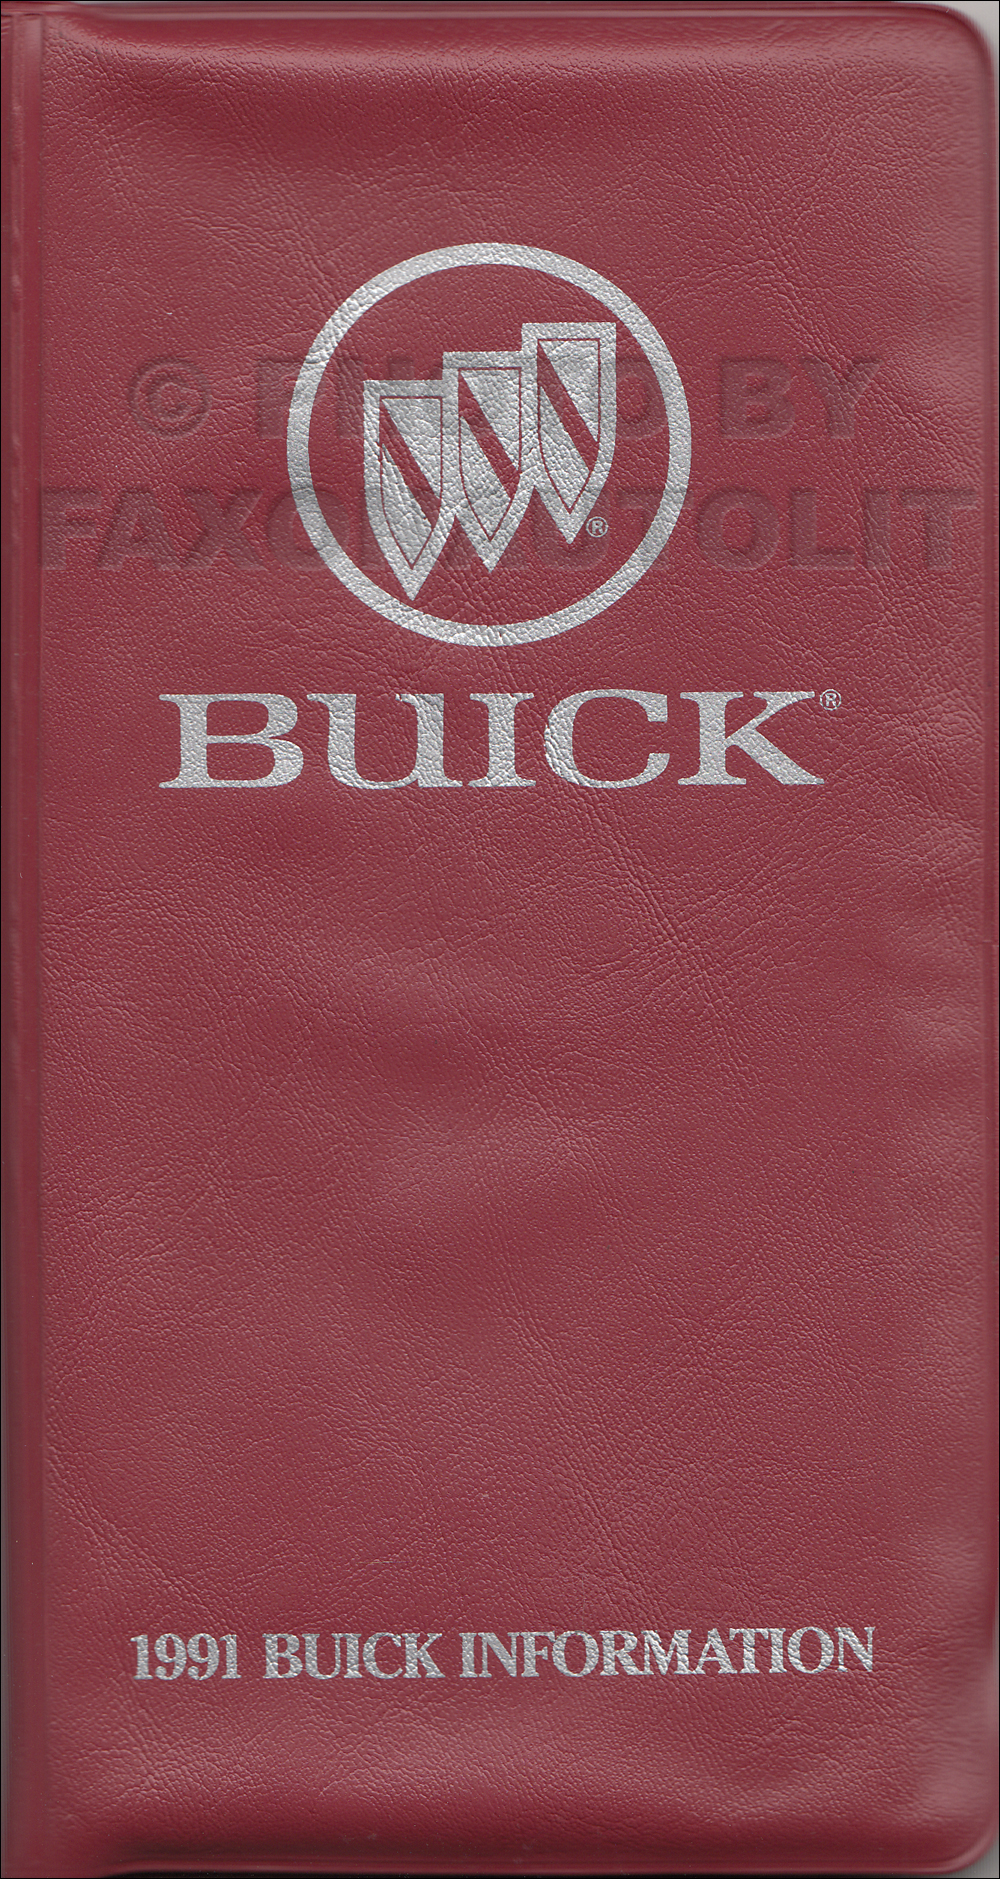 1991 Buick Salesperson's Pocket Price Lists Original